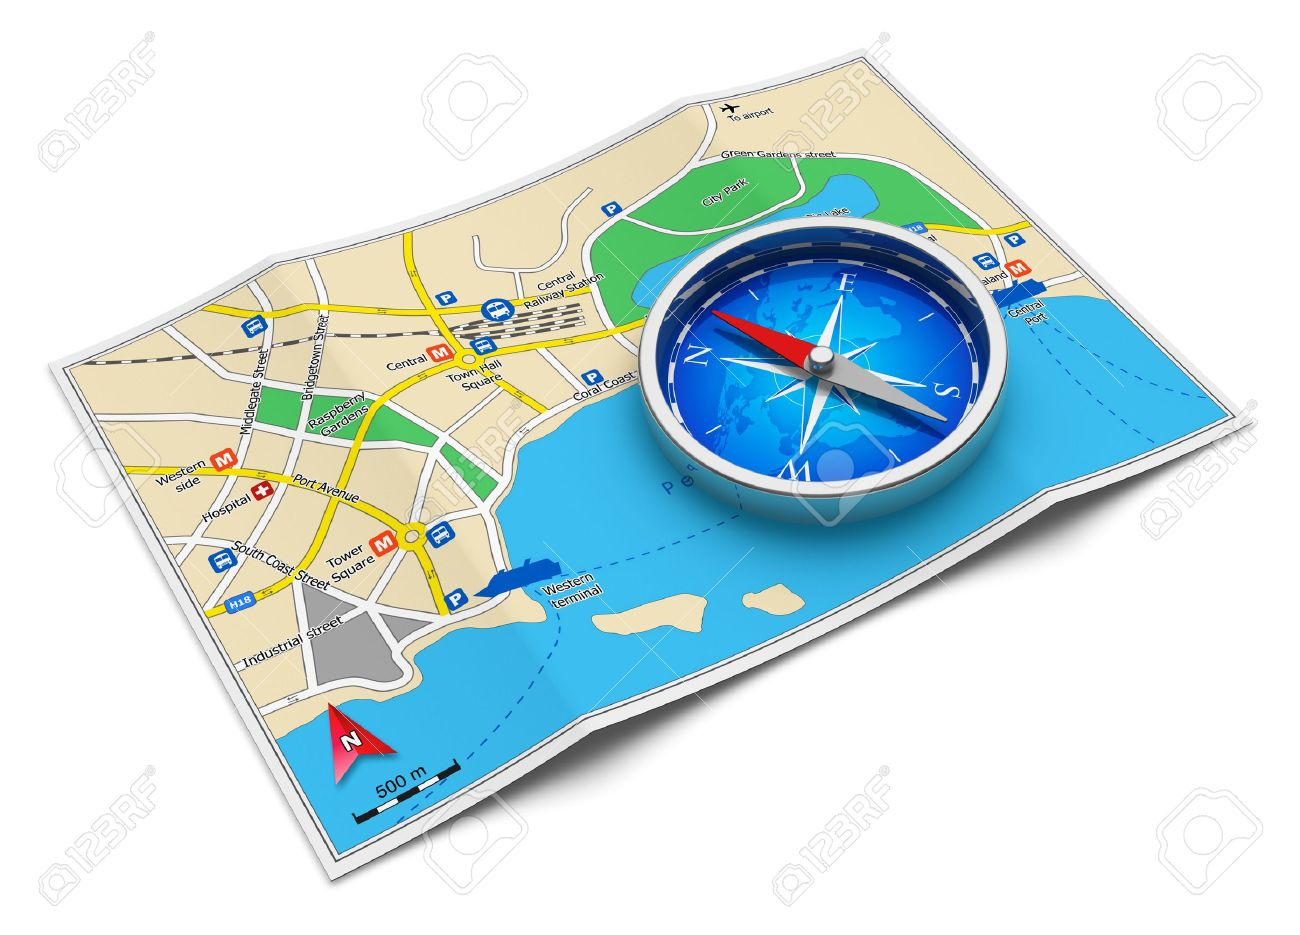 gps navigation tourism and travel route planning concept color city map and blue magnetic